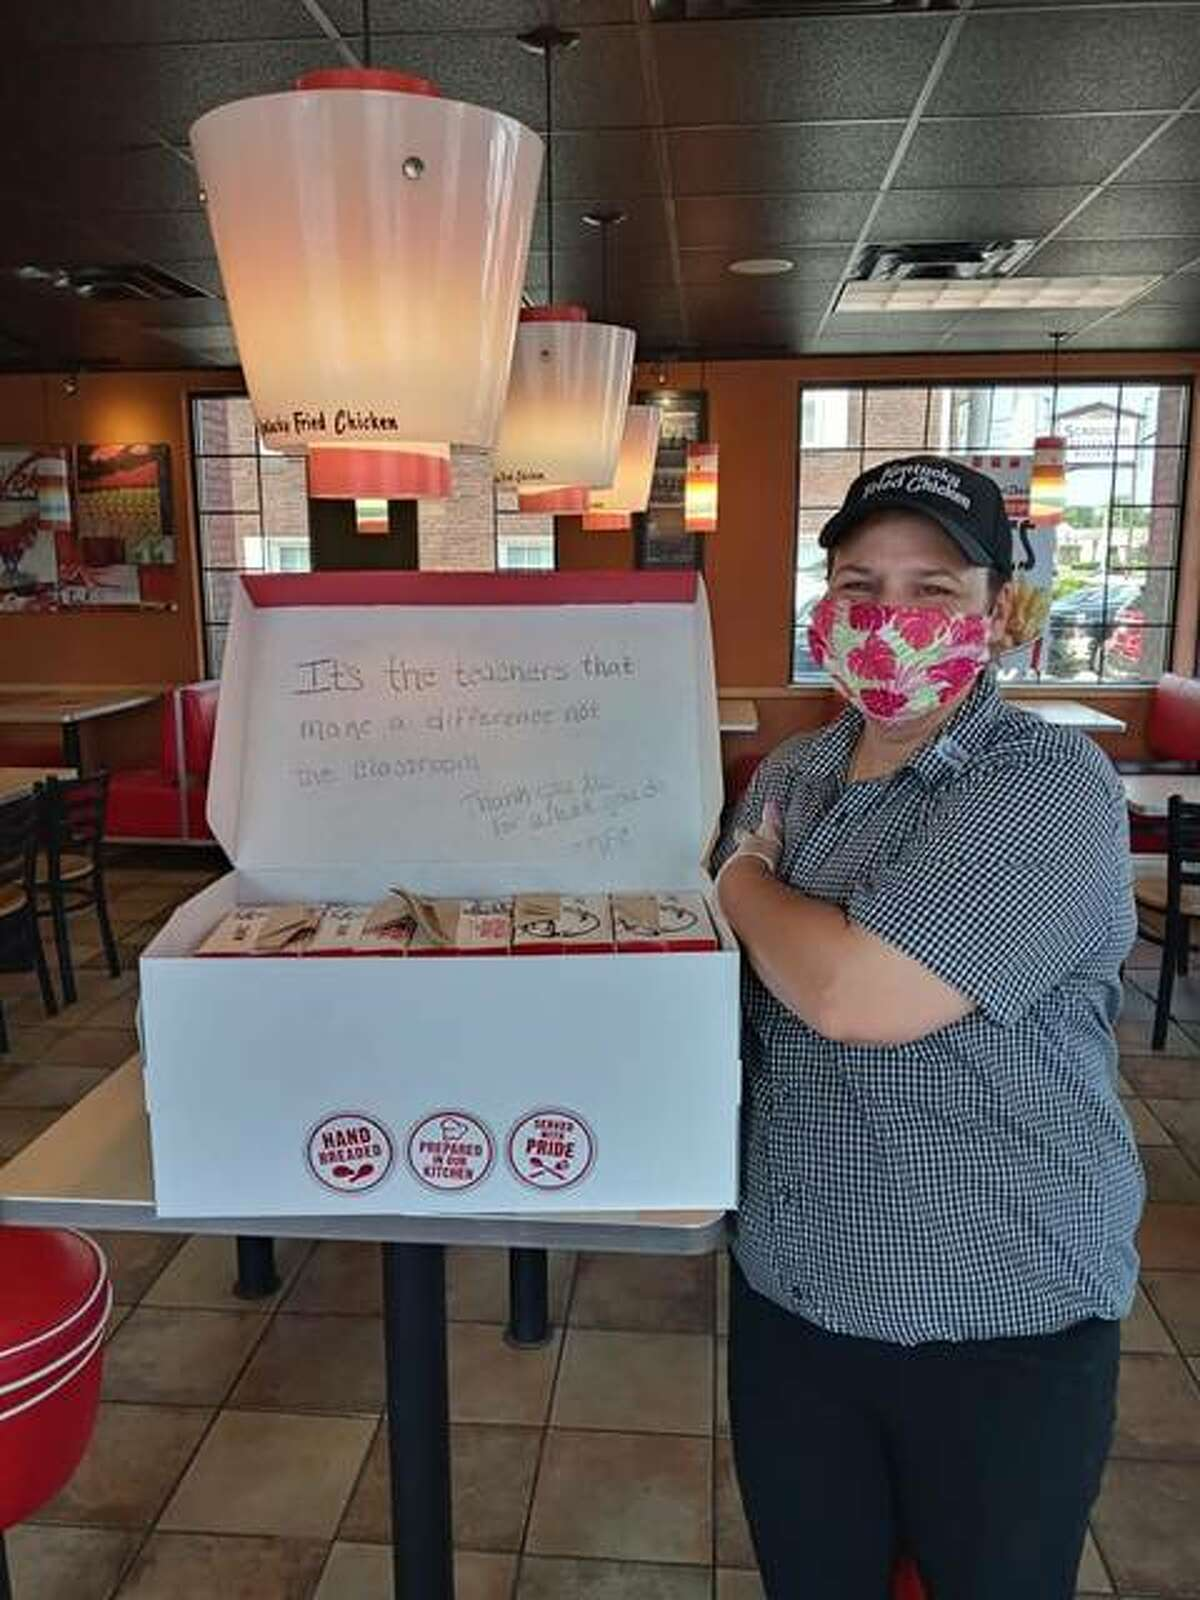 Stephanie Rodgers, general manager of the KFC in Granite City, prepares a delivery box of fried chicken for teachers in Granite City and Belleville. Each box lunch contained a thank you message form the KFC team.